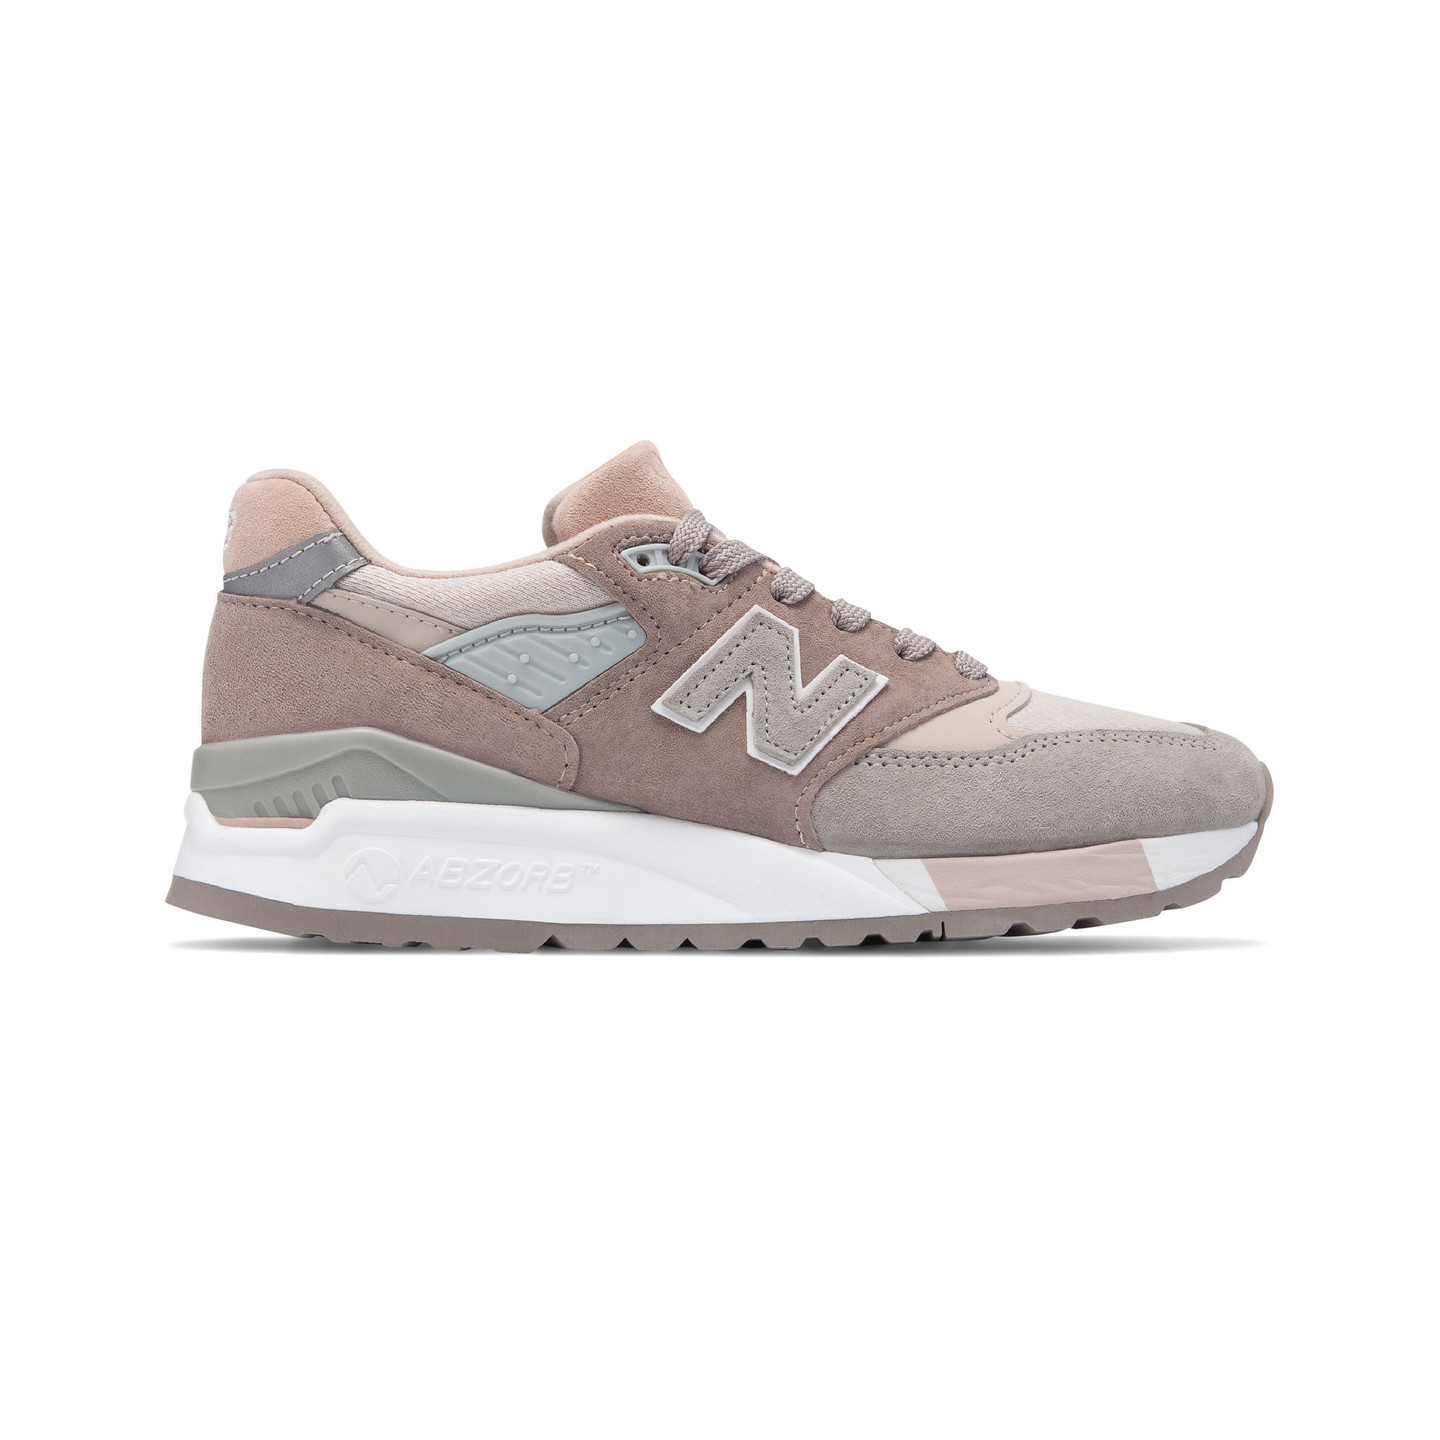 New Balance W998 - Made in USA Beige / Grey / White W998AWA